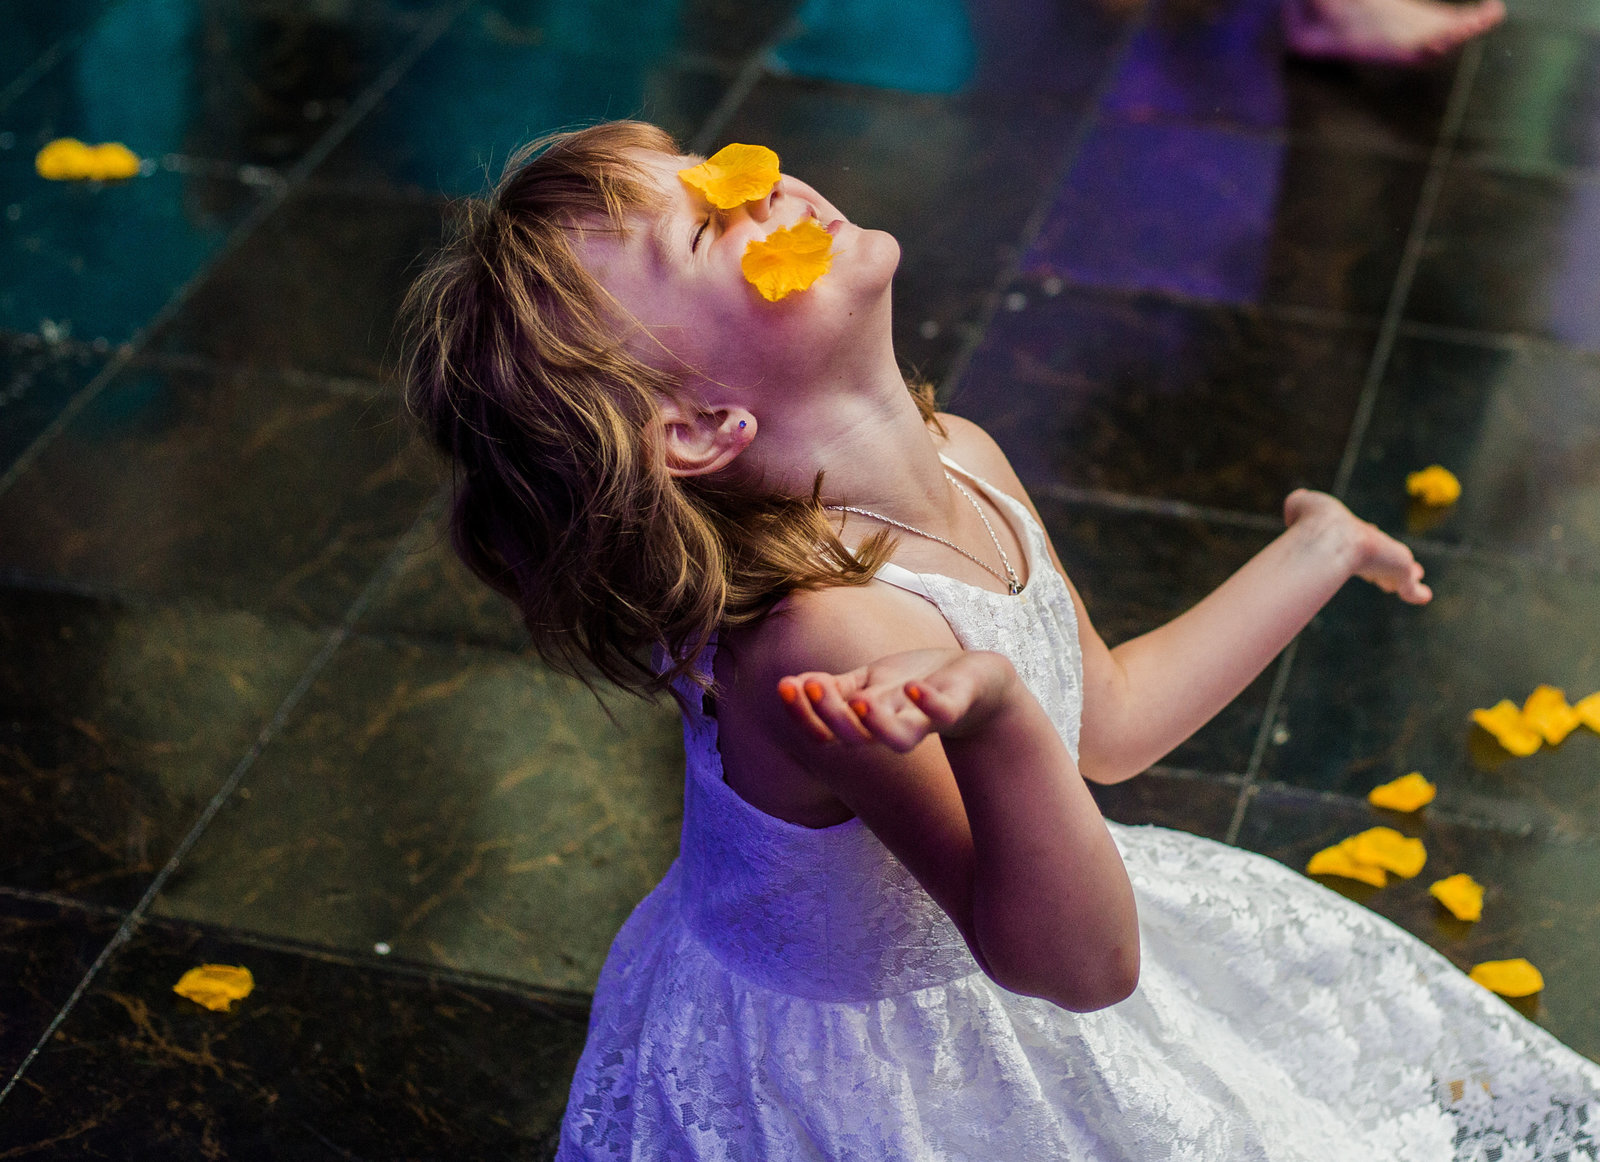 Child plays with flower petals during wedding reception at the Concourse at Union Station